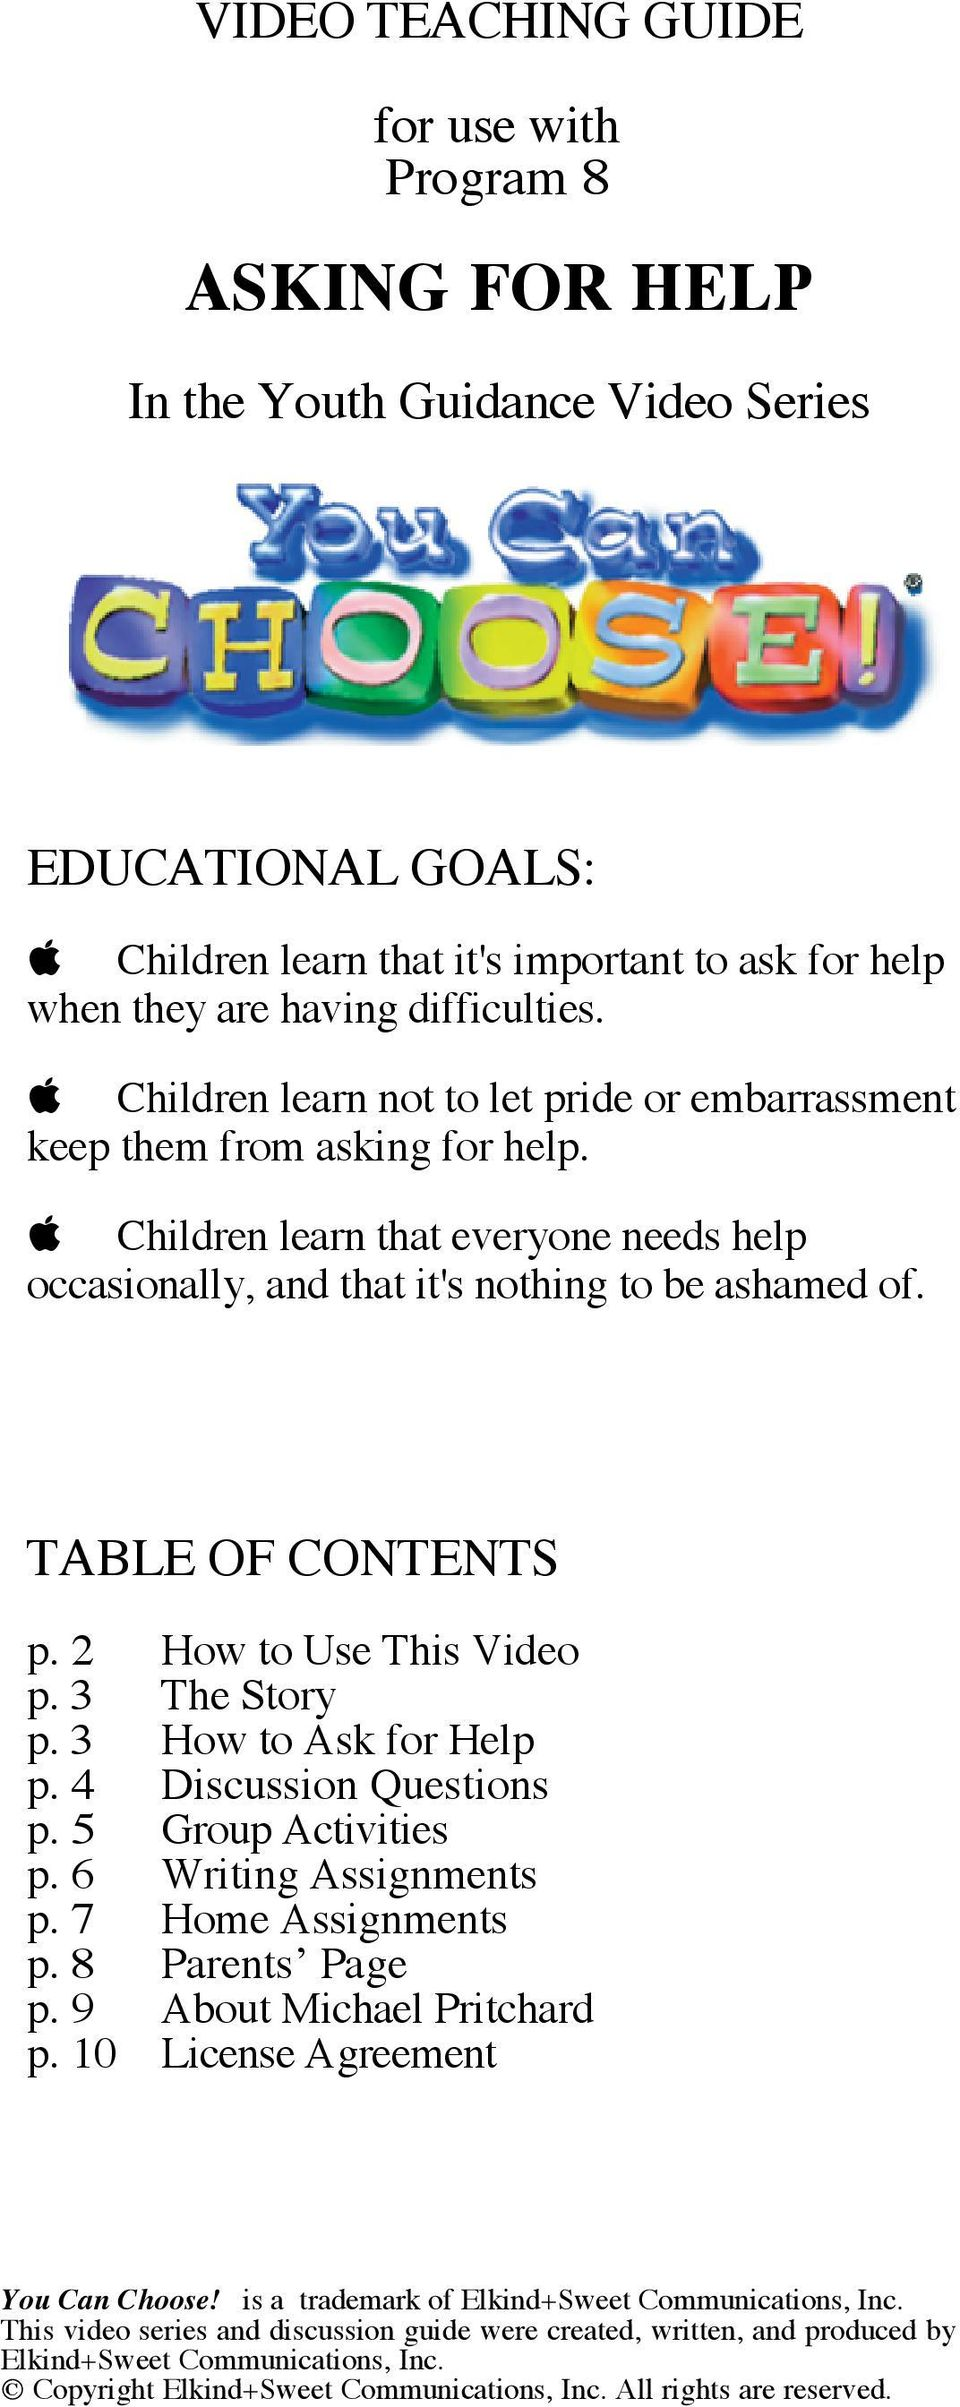 2 How to Use This Video p. 3 The Story p. 3 How to Ask for Help p. 4 Discussion Questions p. 5 Group Activities p. 6 Writing Assignments p. 7 Home Assignments p. 8 Parents Page p.